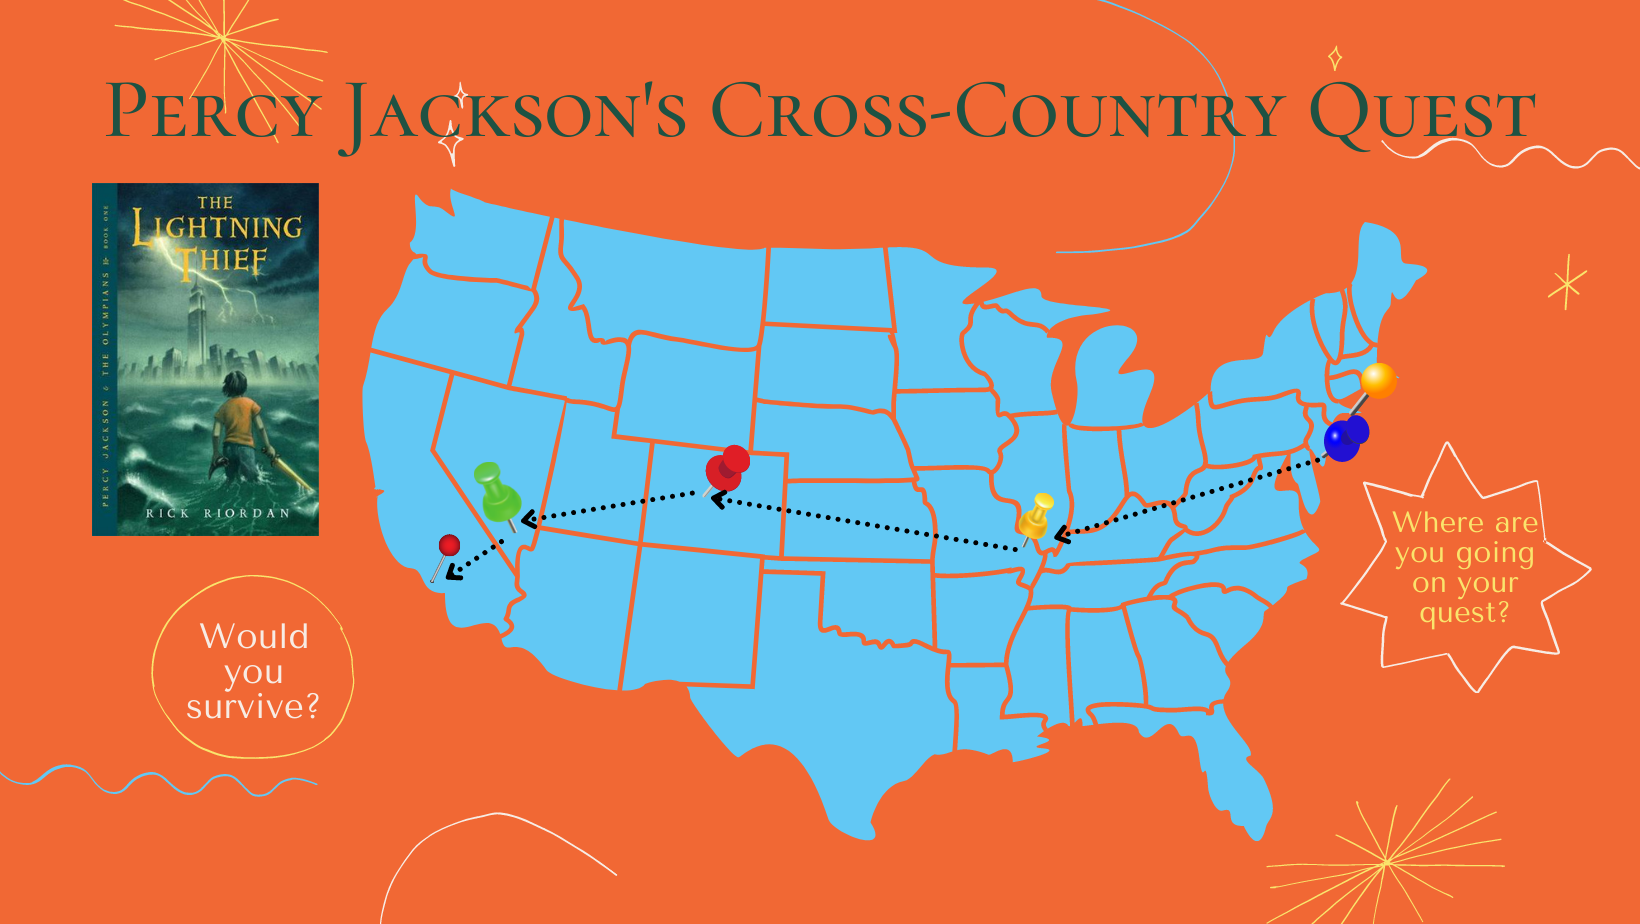 Percy Jackson's Cross Country Quest